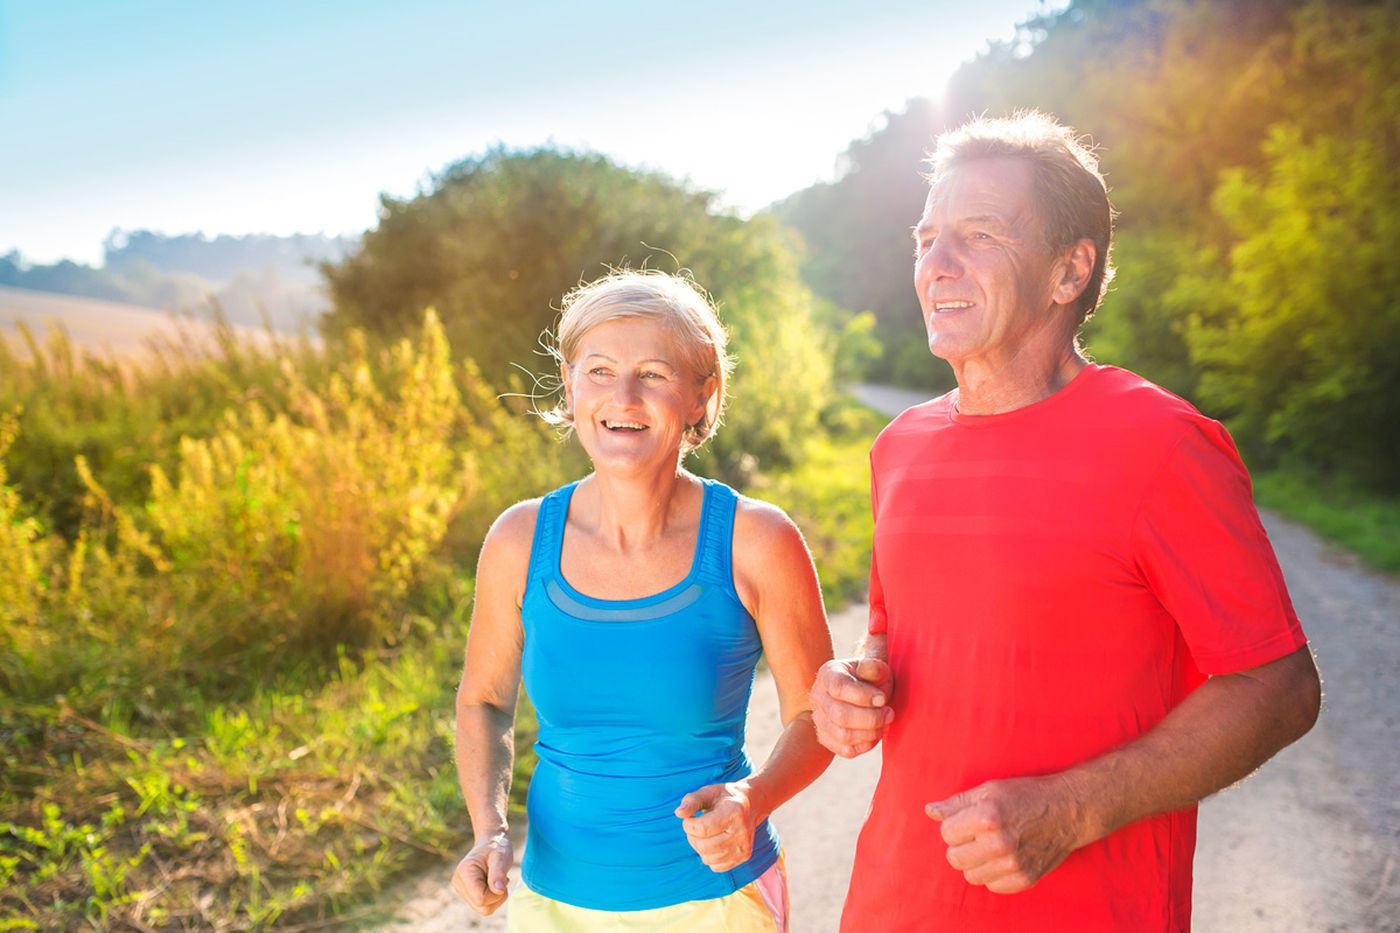 A cardiologistexplains why exercise is important in middle age